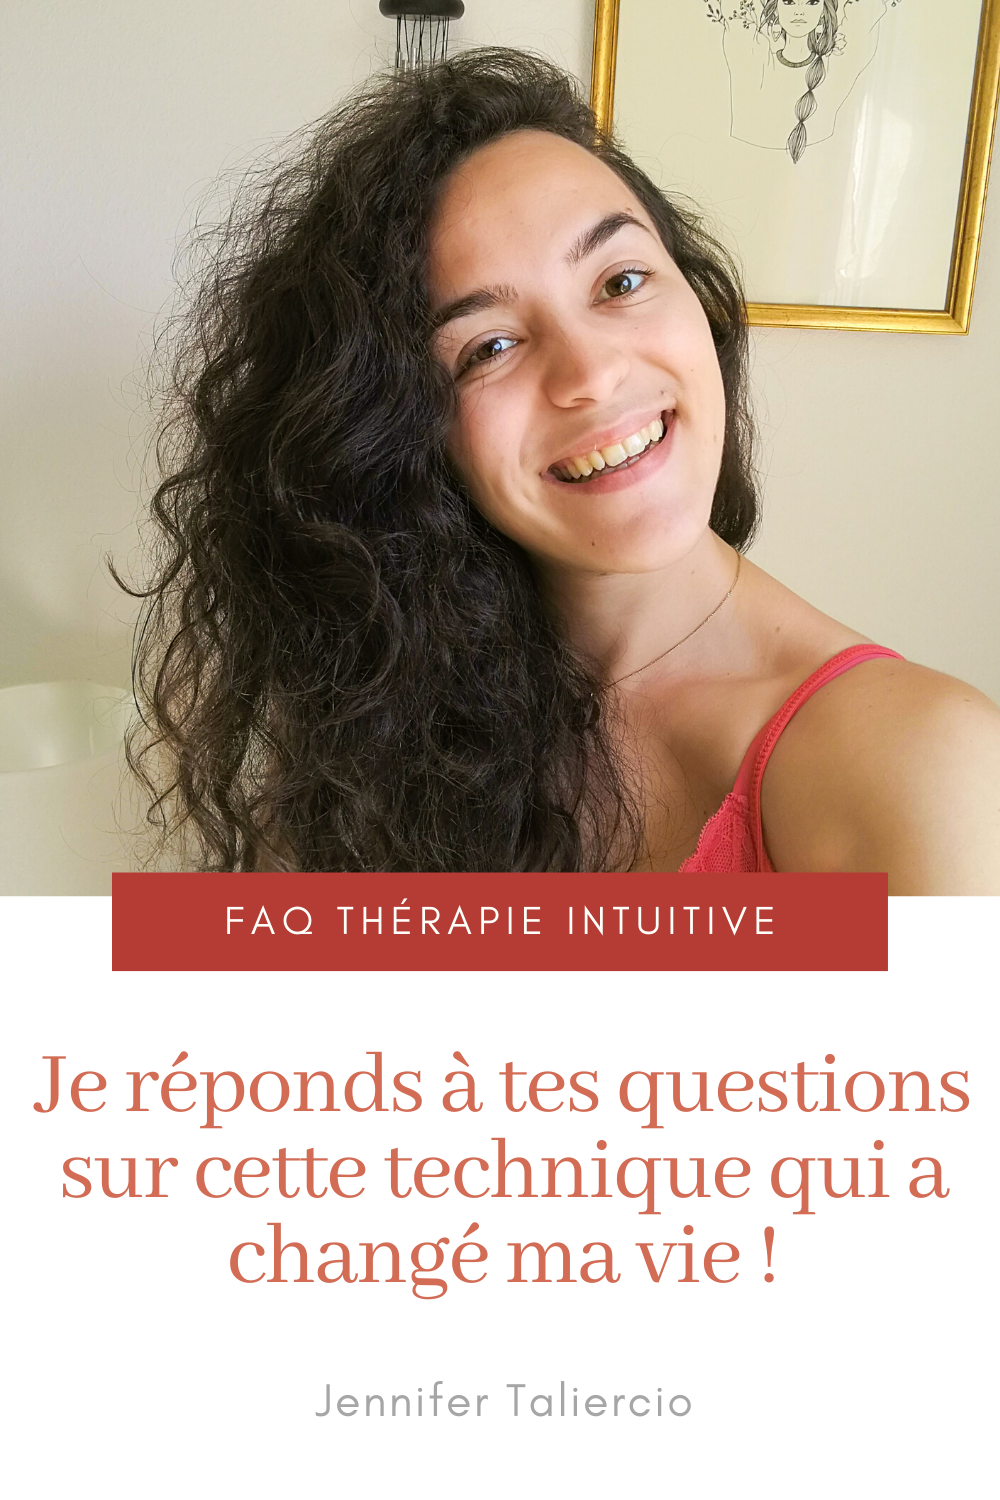 Hemp Woman Face Beauty Pinterest Graphic 1 - FAQ Thérapie Intuitive : je répond à tes questions